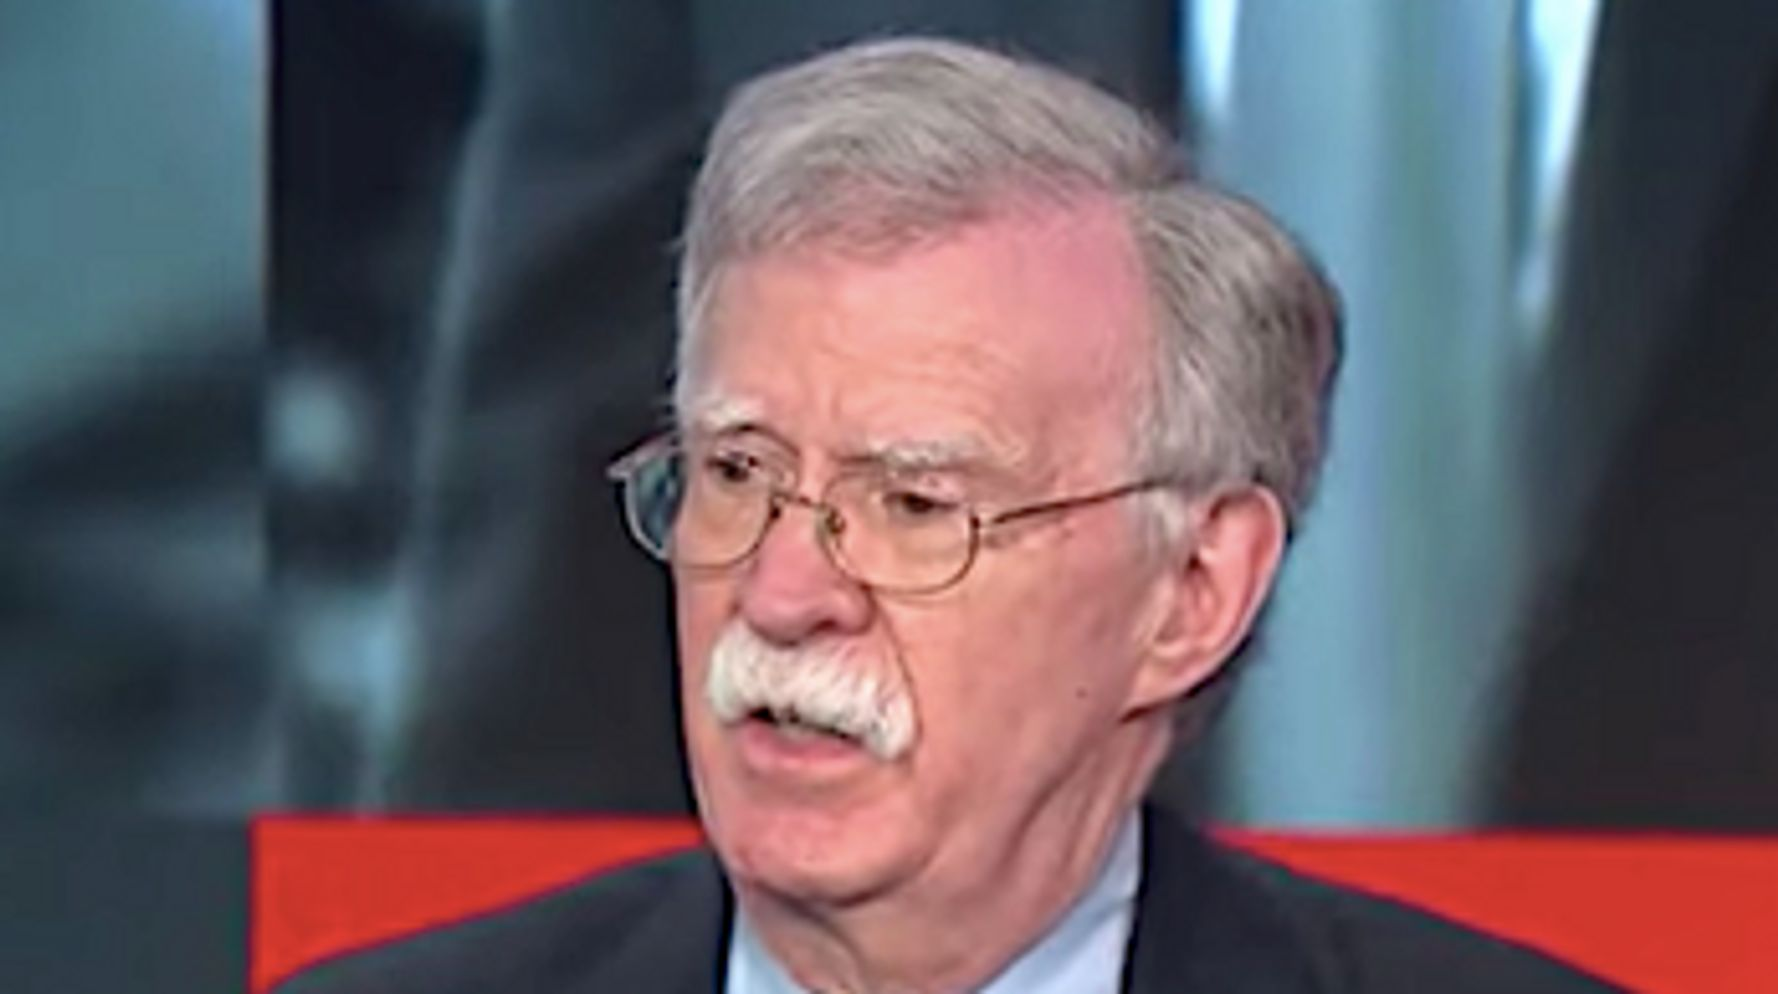 Trump Won't Go Quietly And It May Take Weak GOP To Boot Him, John Bolton Says